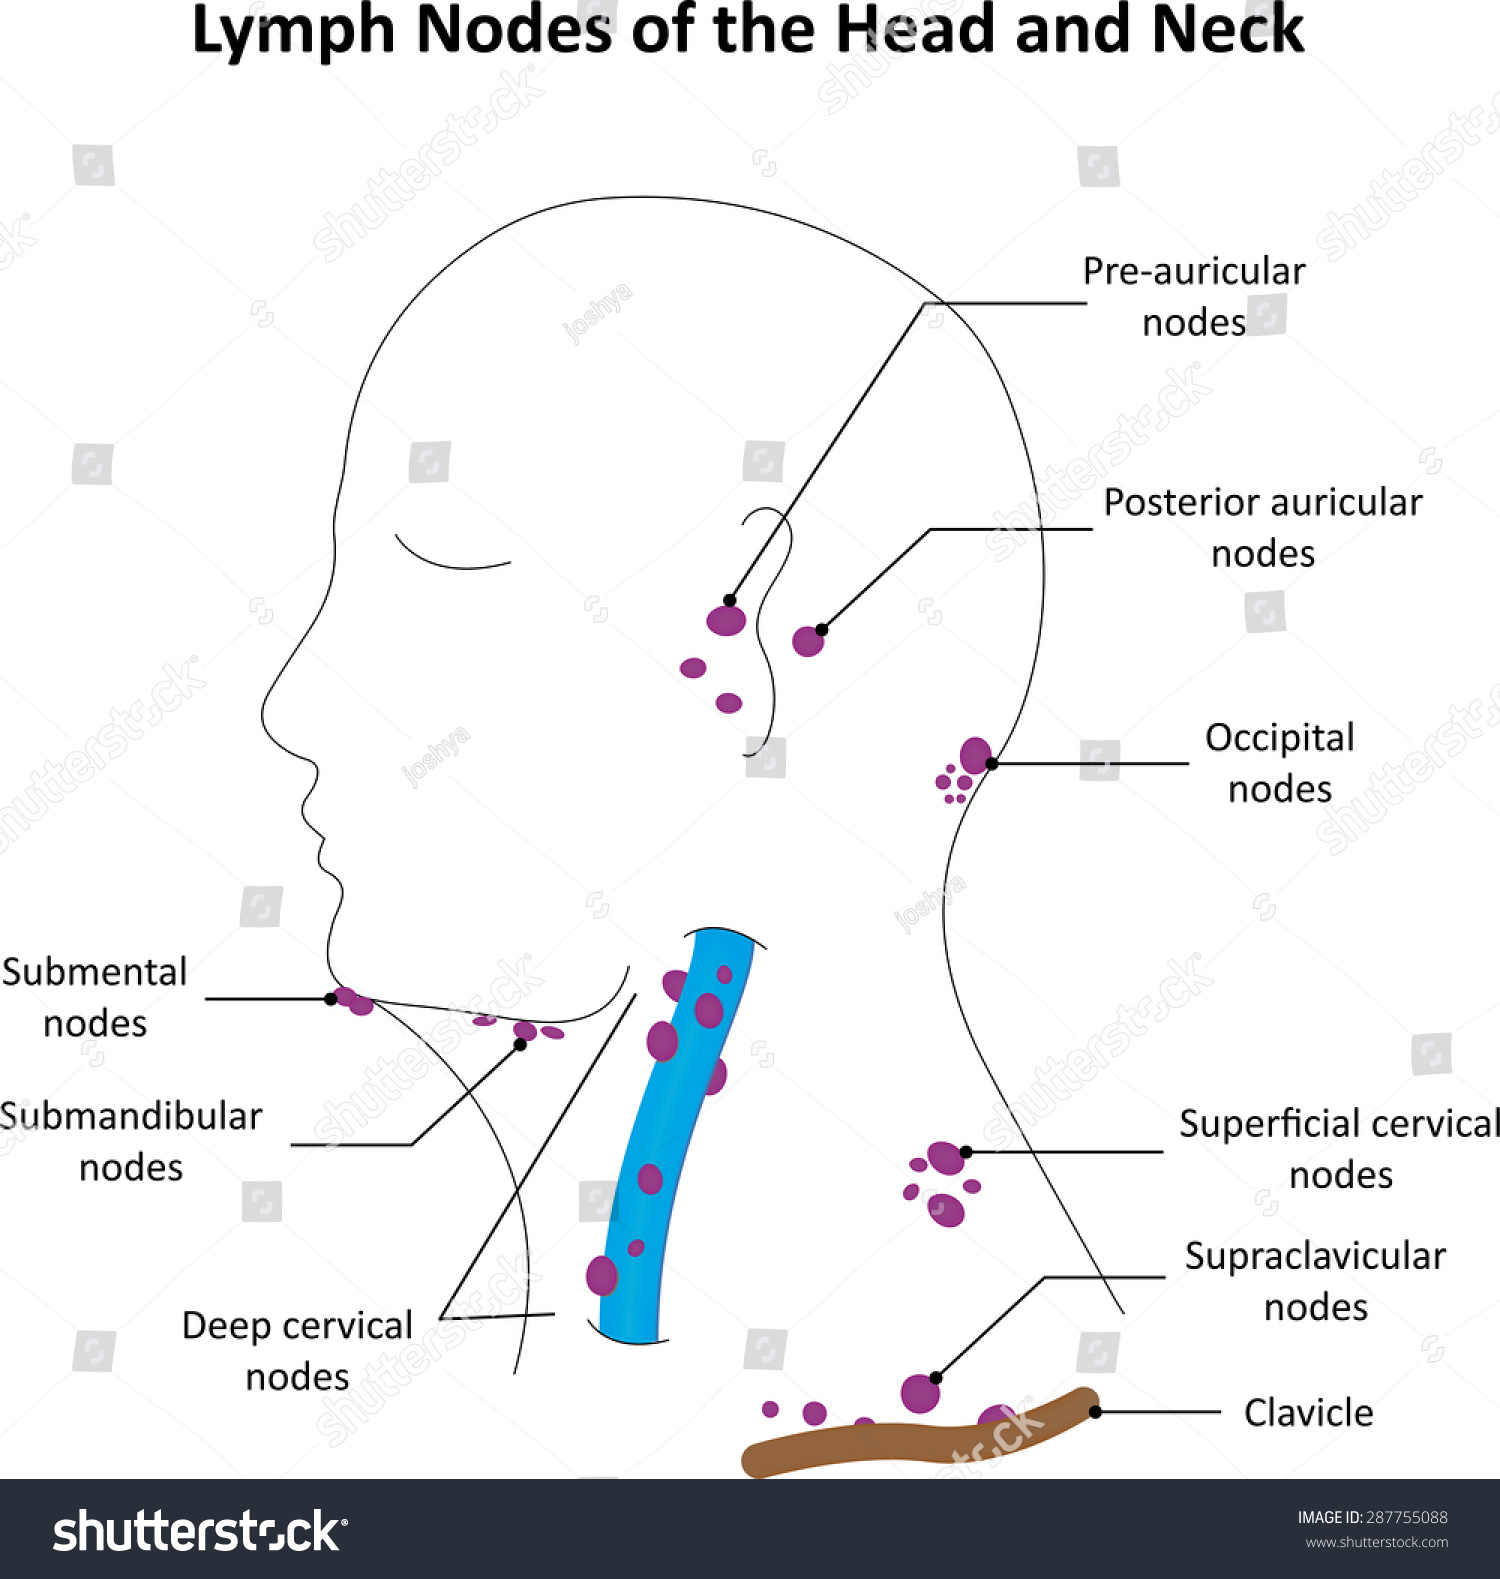 hight resolution of lymph nodes of the head and neck labelled diagram